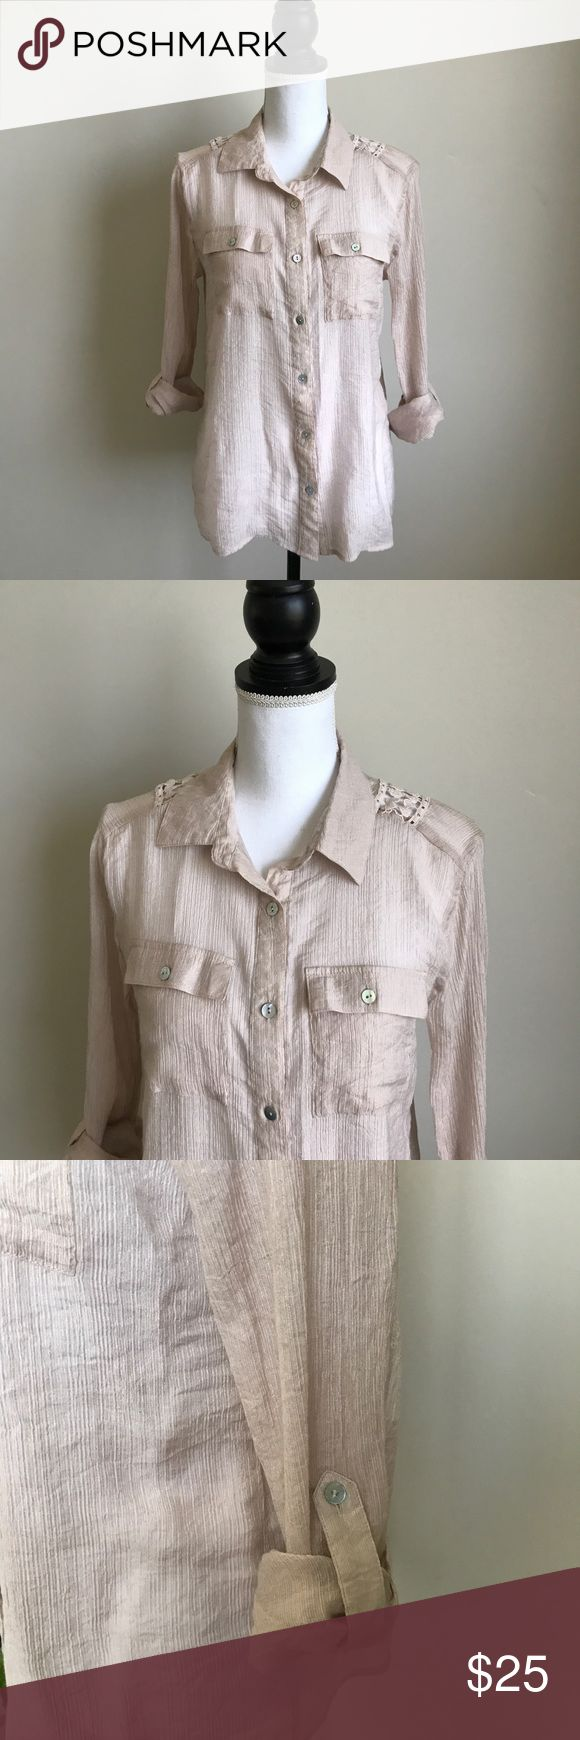 Quiksilver women's beige blouse crochet size M Beautiful button down blouse from Quiksilver. Beige with crochet detail on the back and roll up sleeves. Size medium. Quiksilver Tops Button Down Shirts